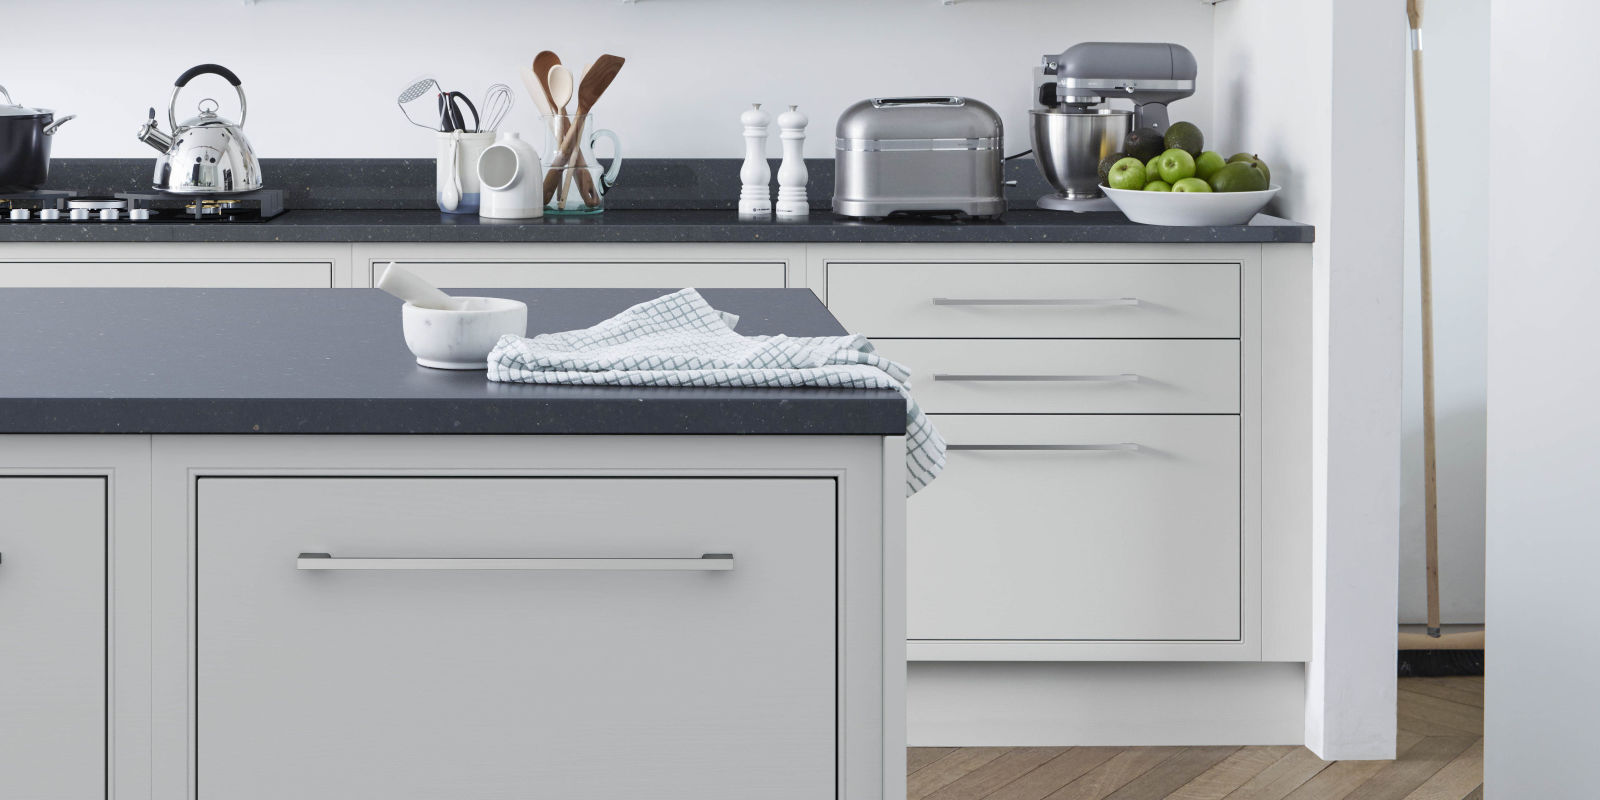 10 Best Kitchen Trends And Habits Of 2017 As Revealed By John Lewis Kitchen Appliances